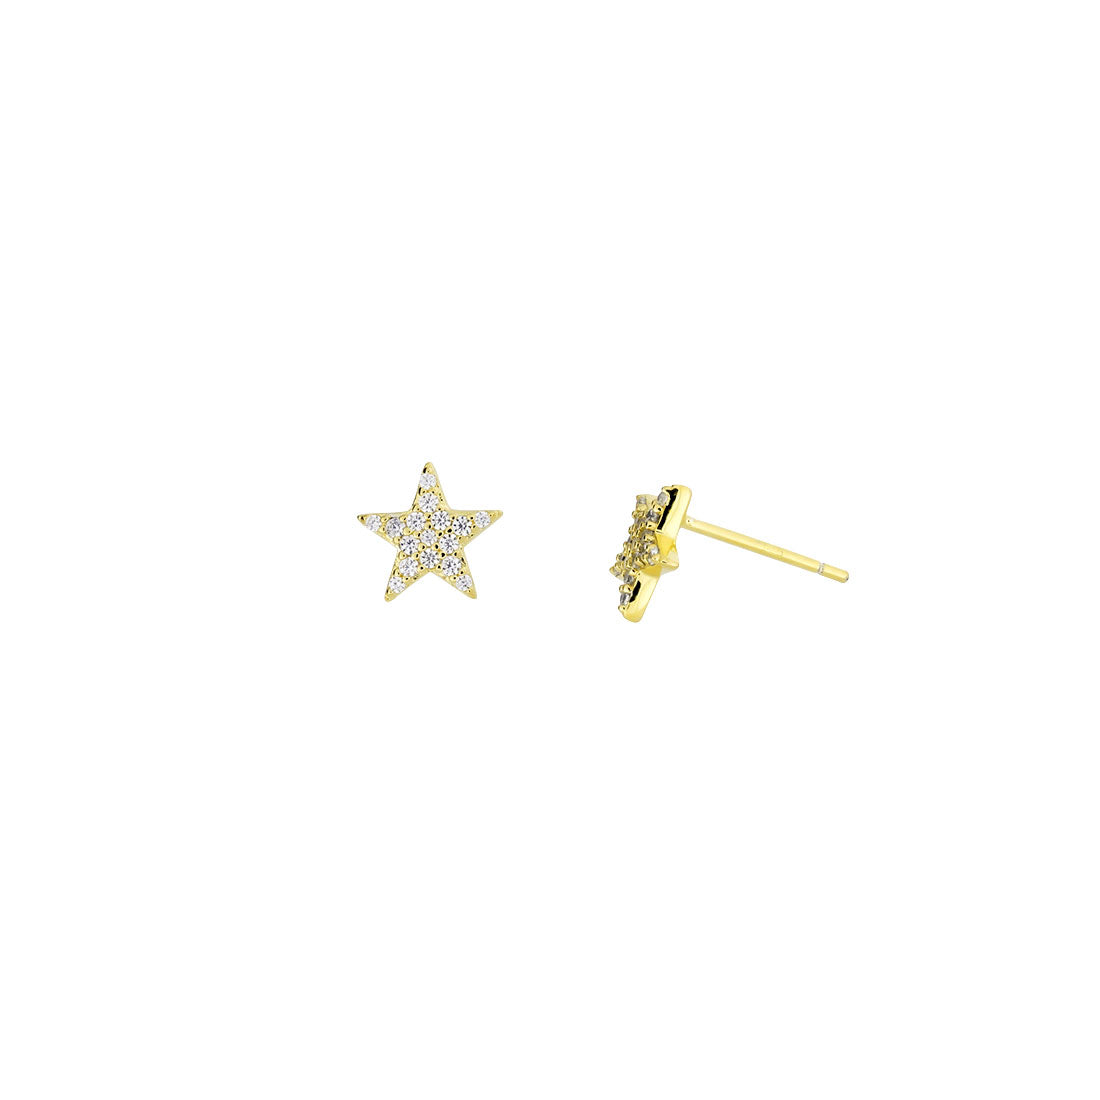 Little Pavé Star Stud Earrings - Gold Vermeil